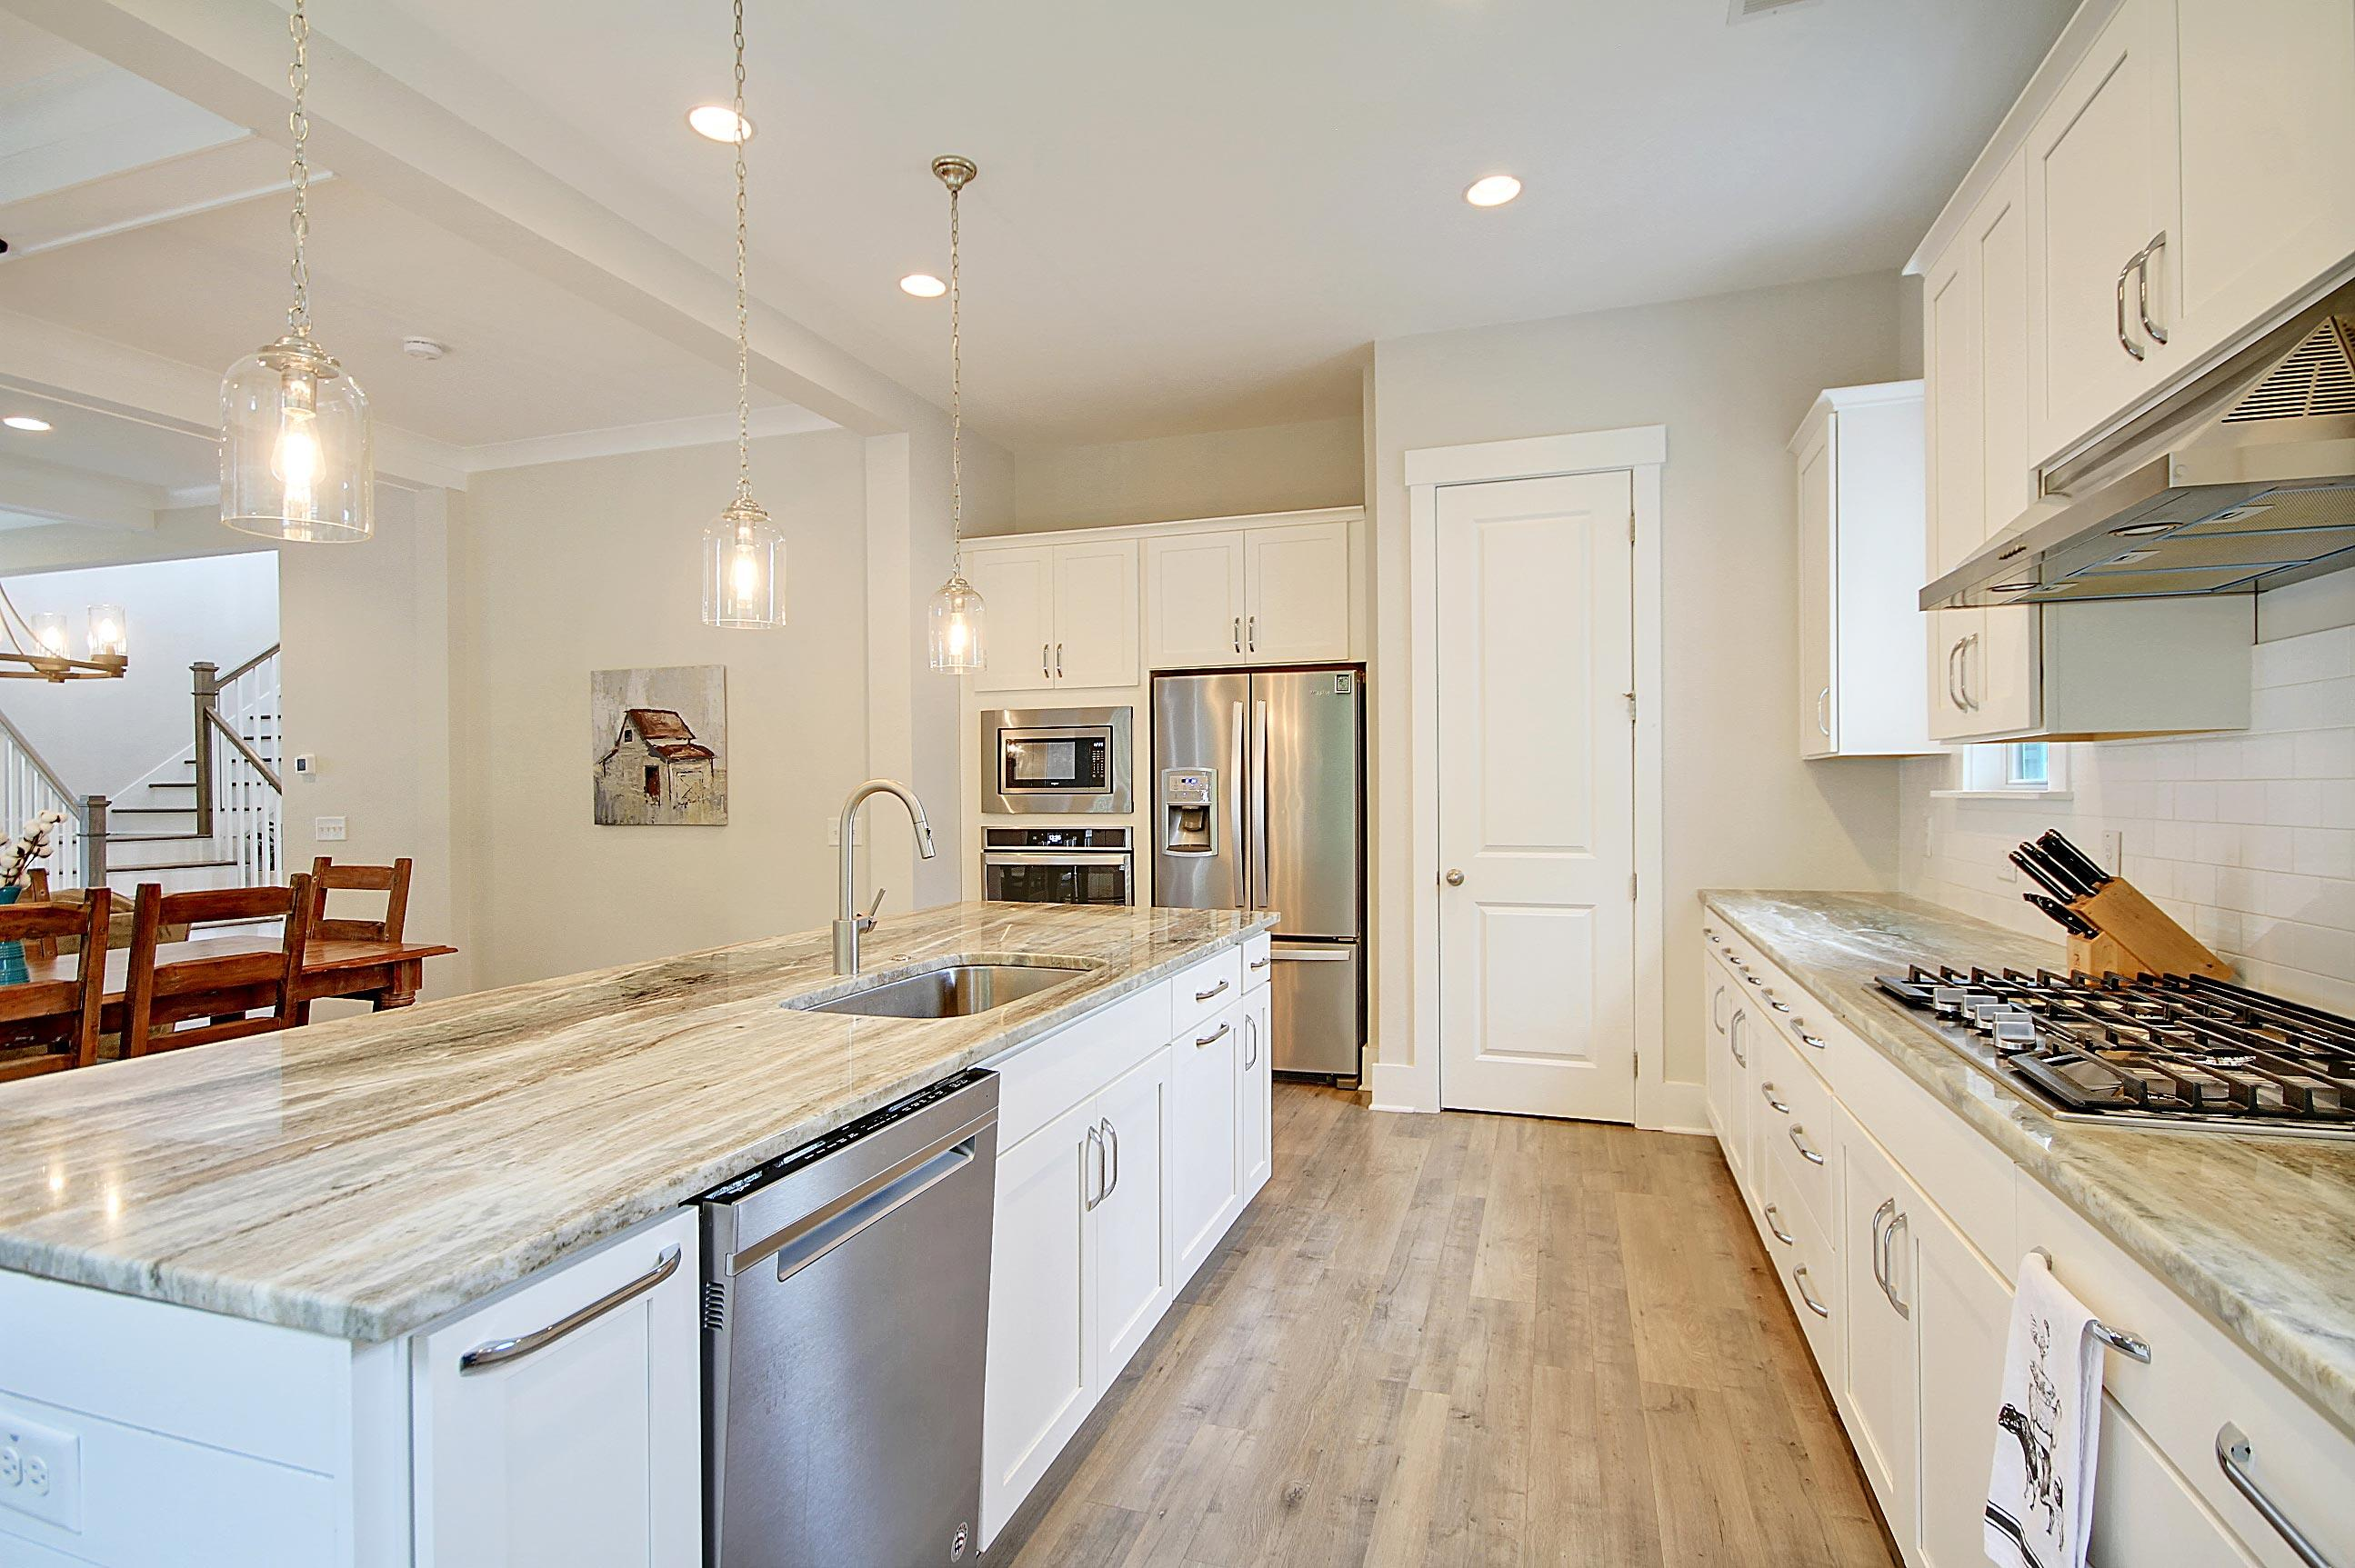 Stratton by the Sound Homes For Sale - 3542 Saltflat, Mount Pleasant, SC - 1